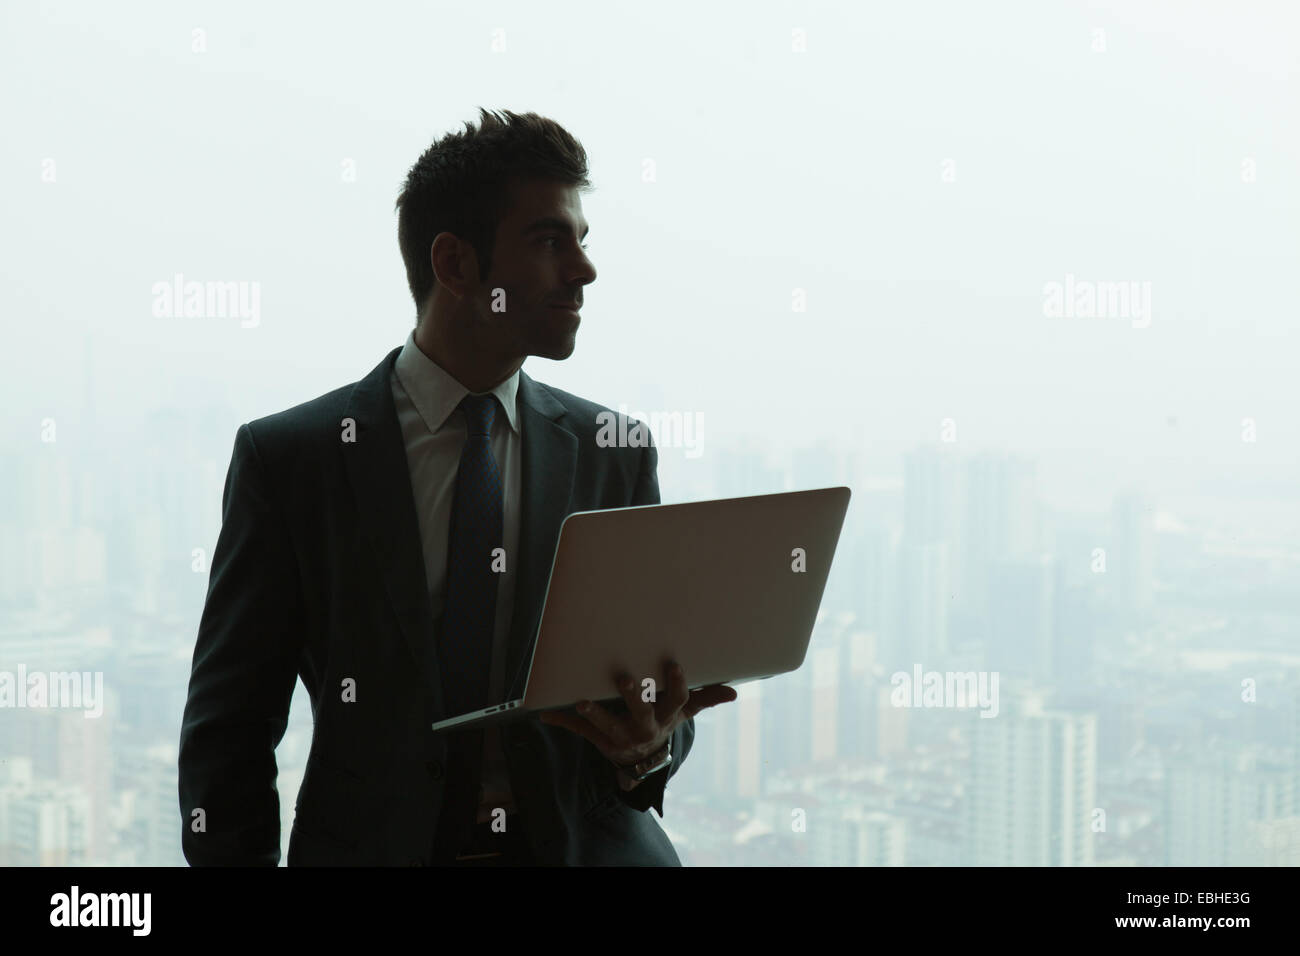 Young businessman with laptop in front of skyscraper office window, Shanghai, China Stock Photo